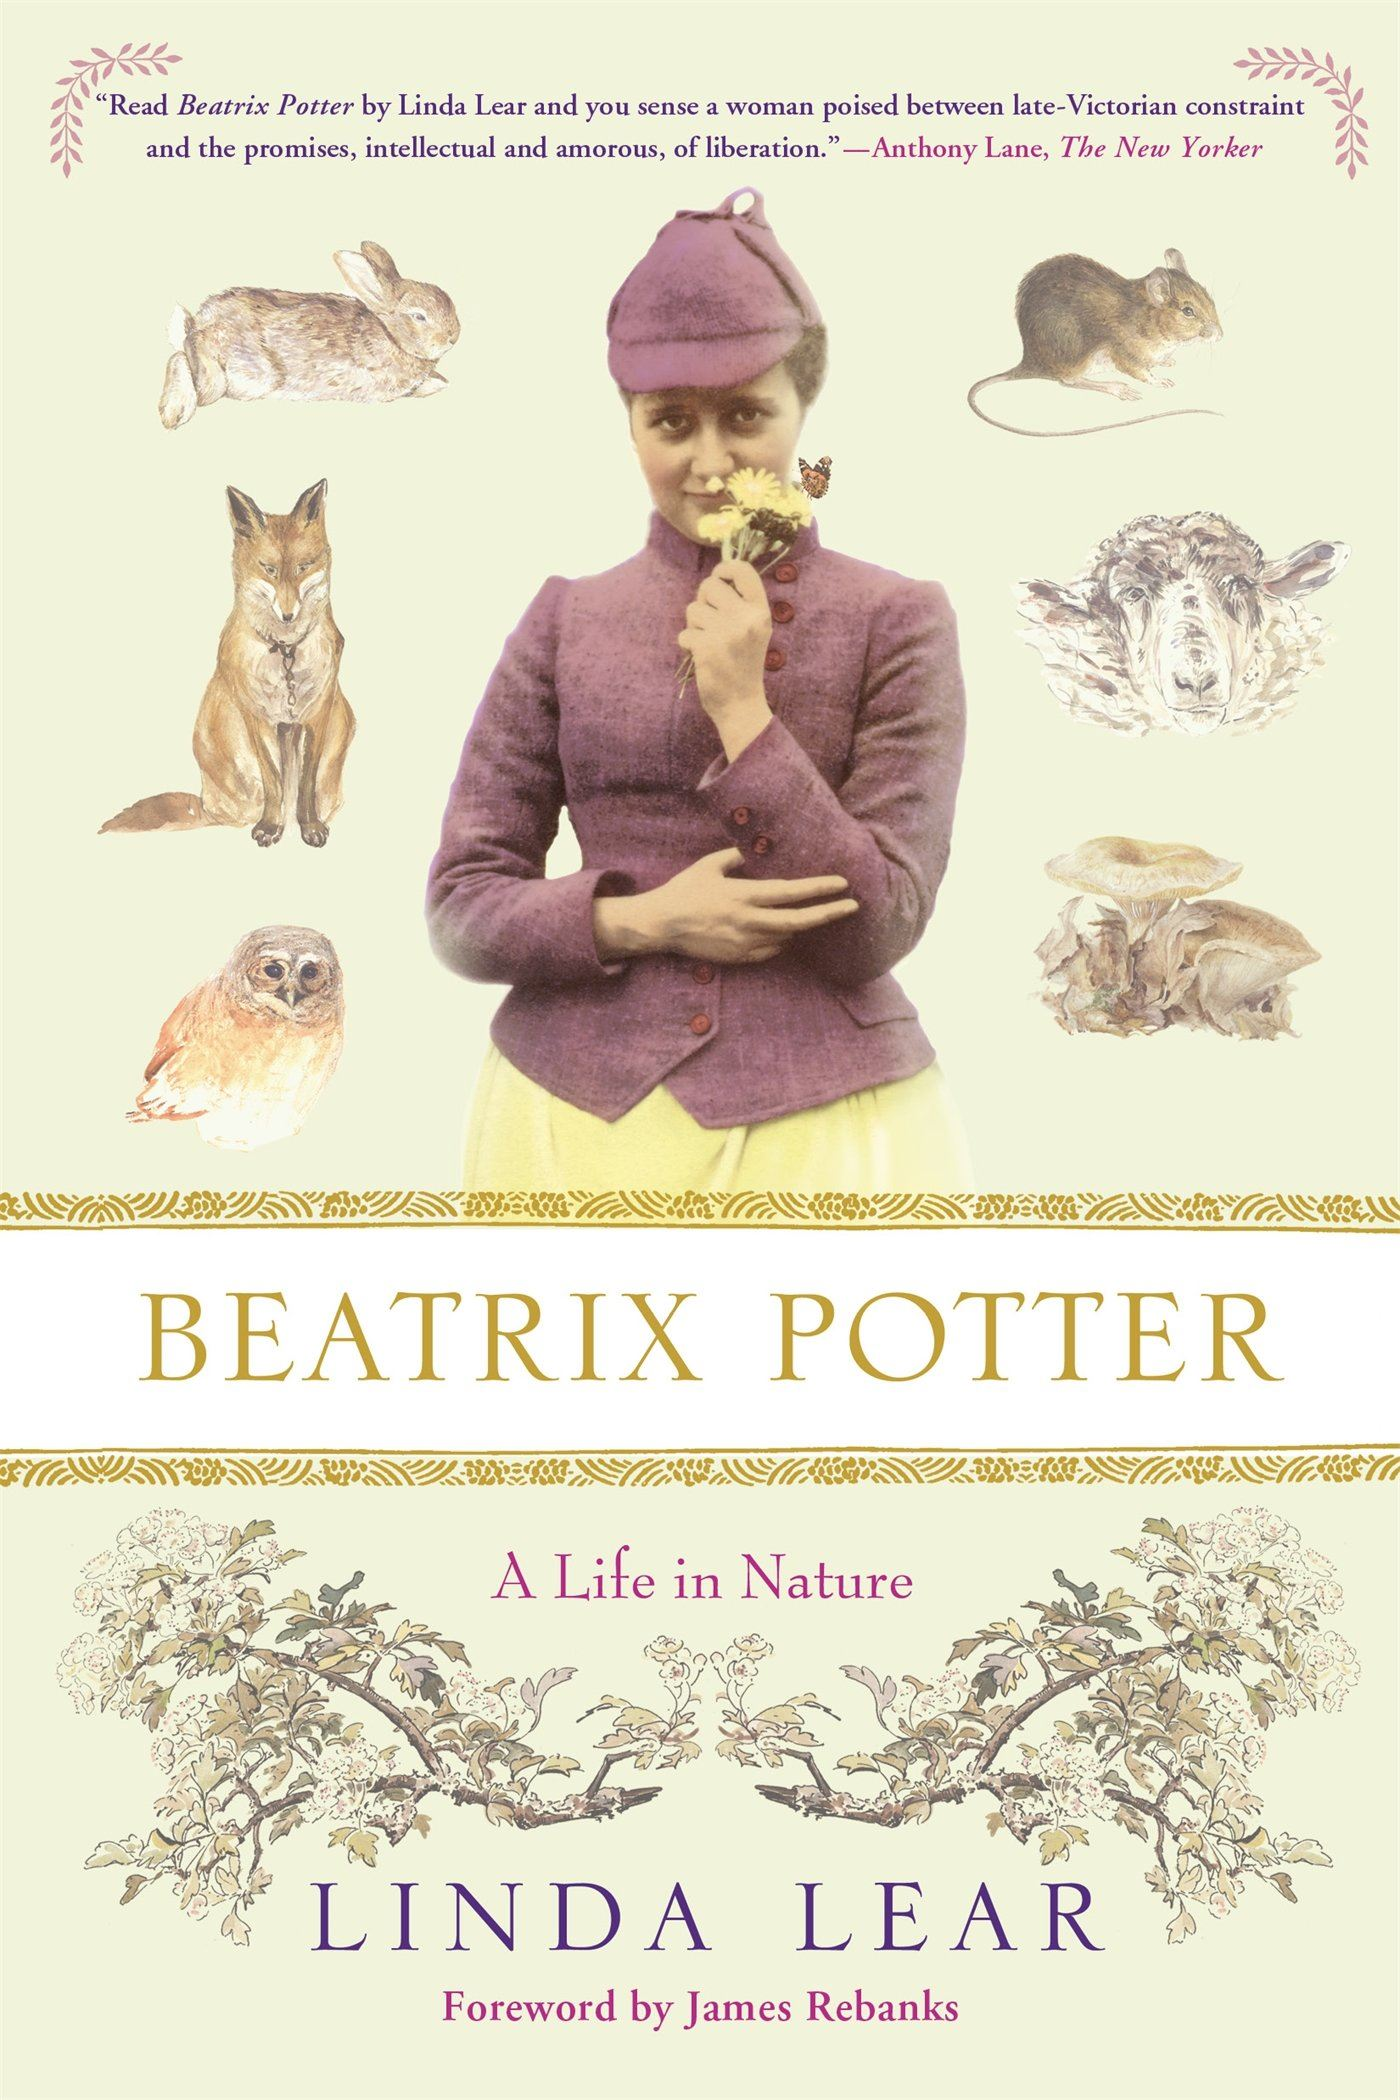 Beatrix Potter Book Cover Image